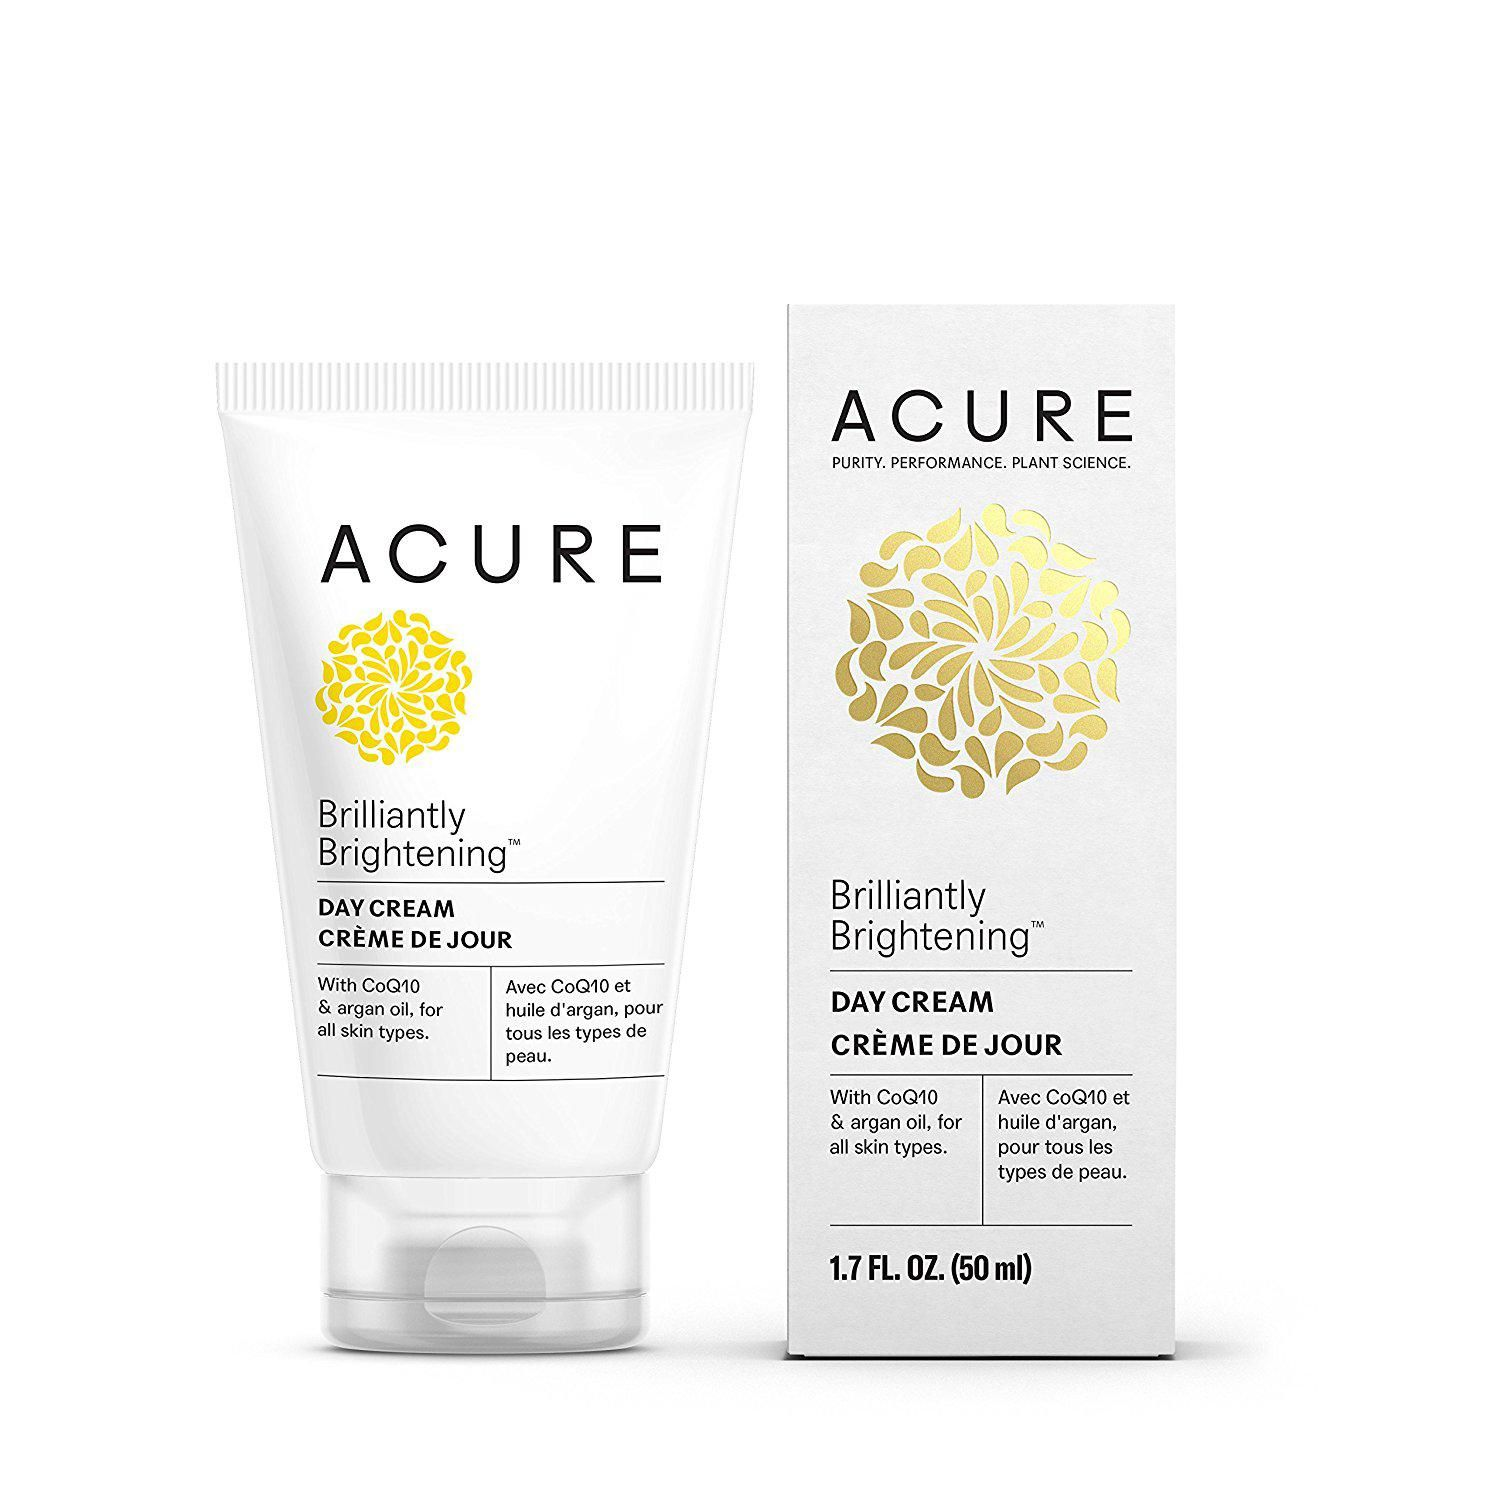 Acure Brilliantly Brightening Day Cream, 1.7 Fluid Ounce